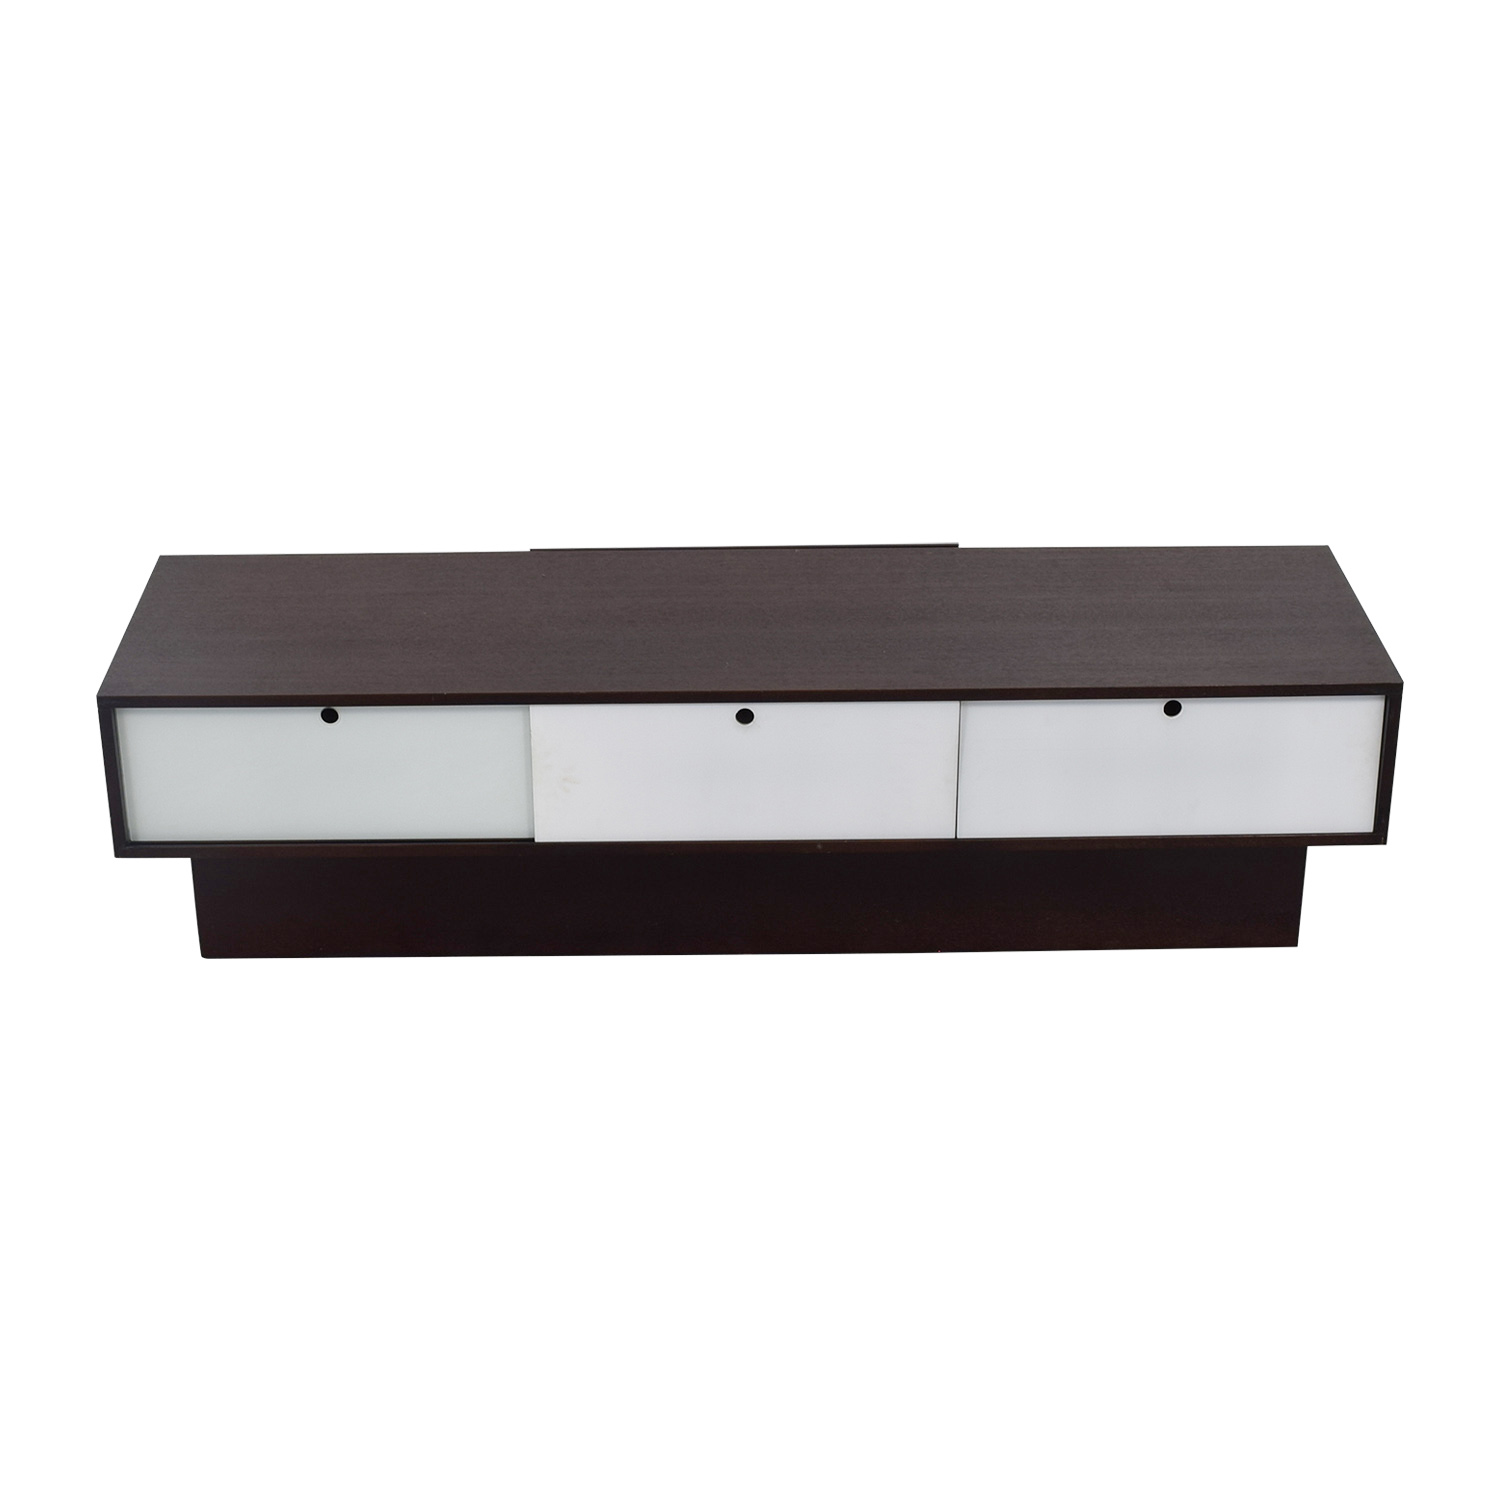 buy Sitcom Lisbon White Glass and Cherry Wood Plasma Base Sitcom Media Units